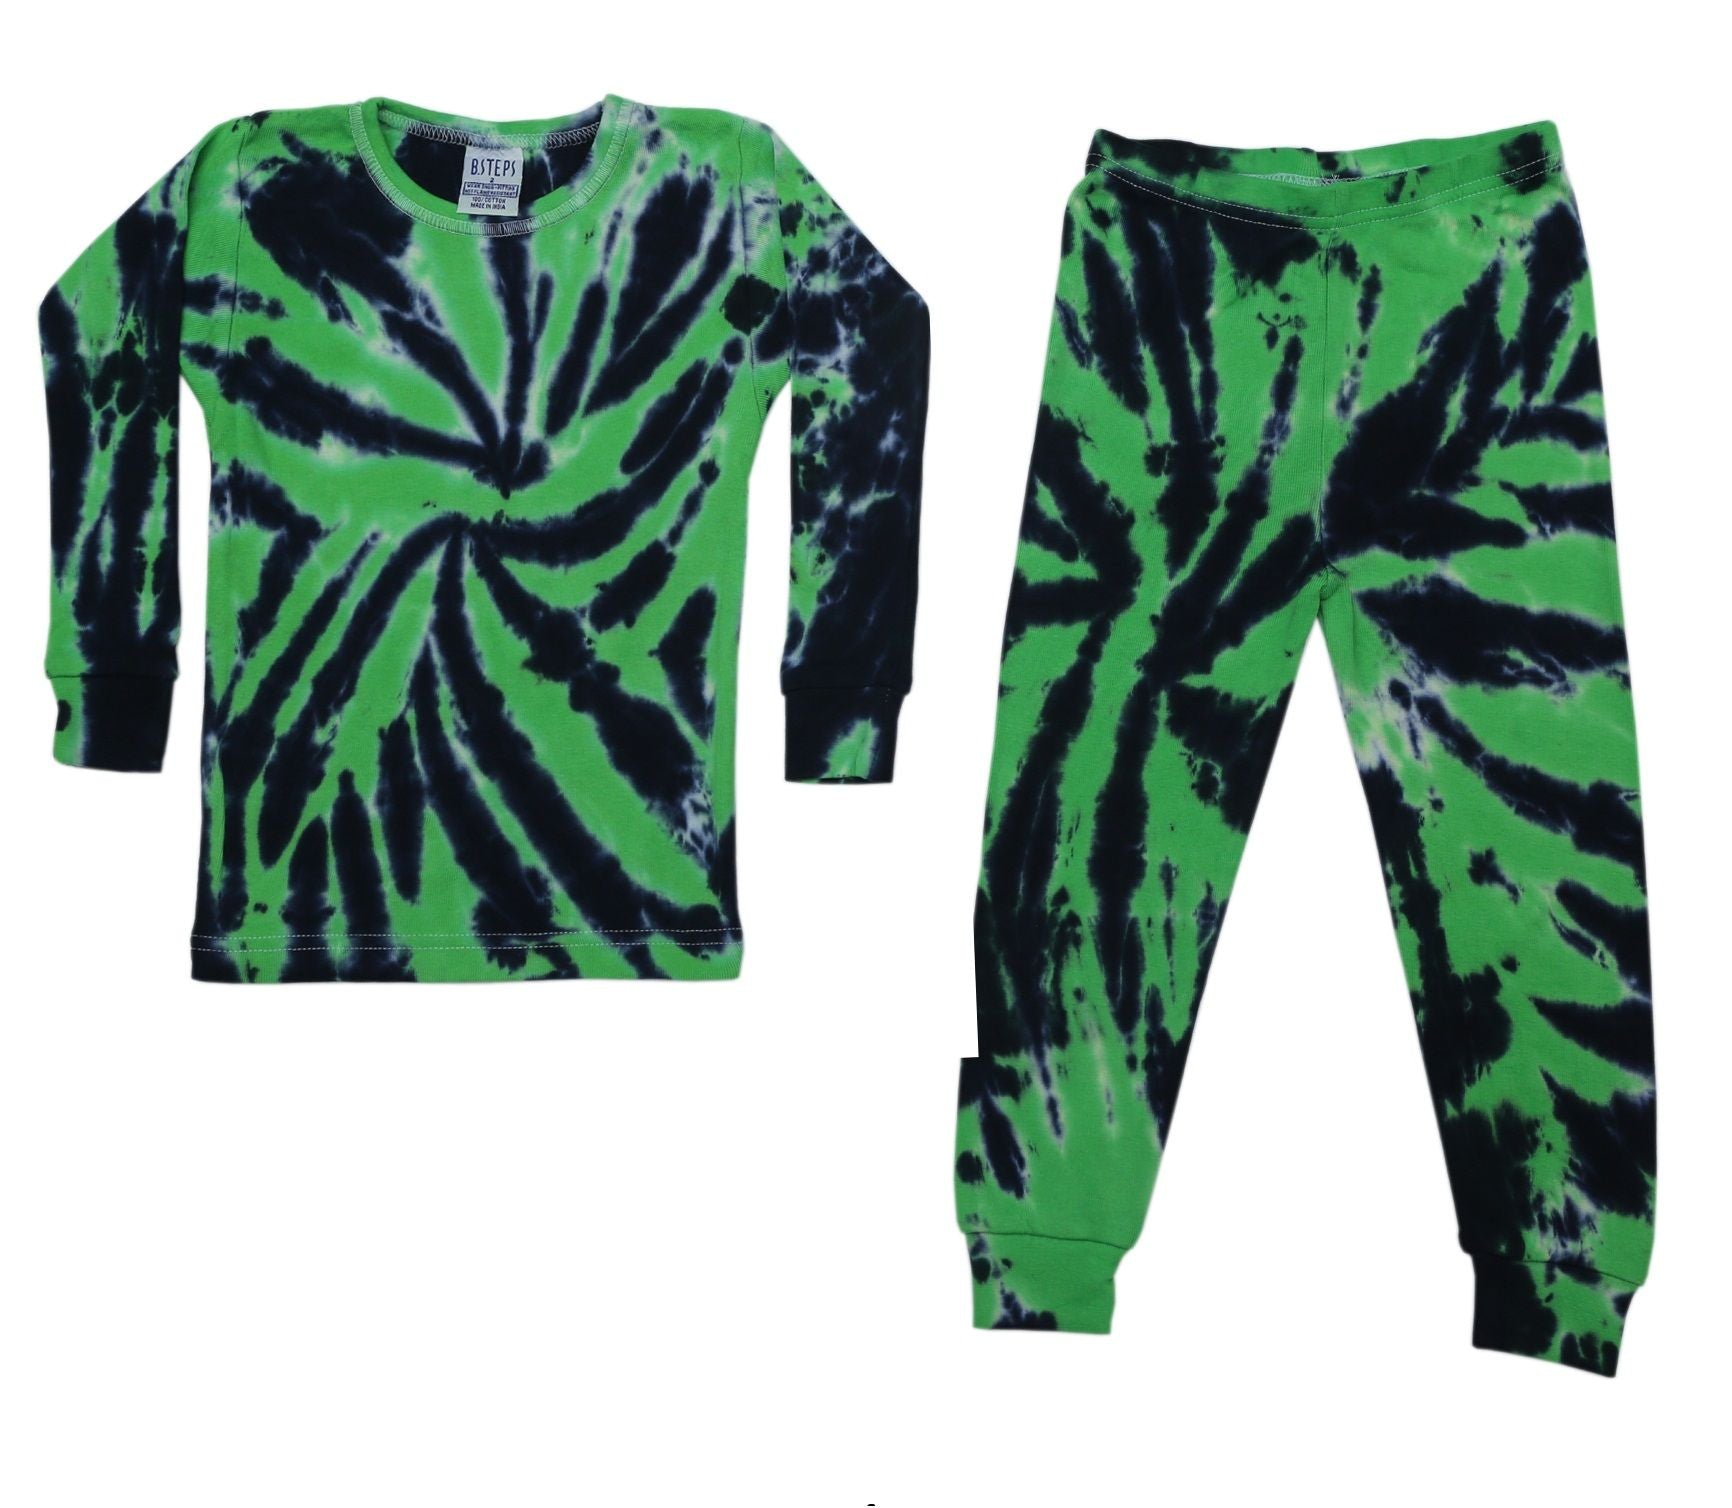 NEW!  Cotton Rib Knit Tie Dye Pajamas - Eli (4646101090379)